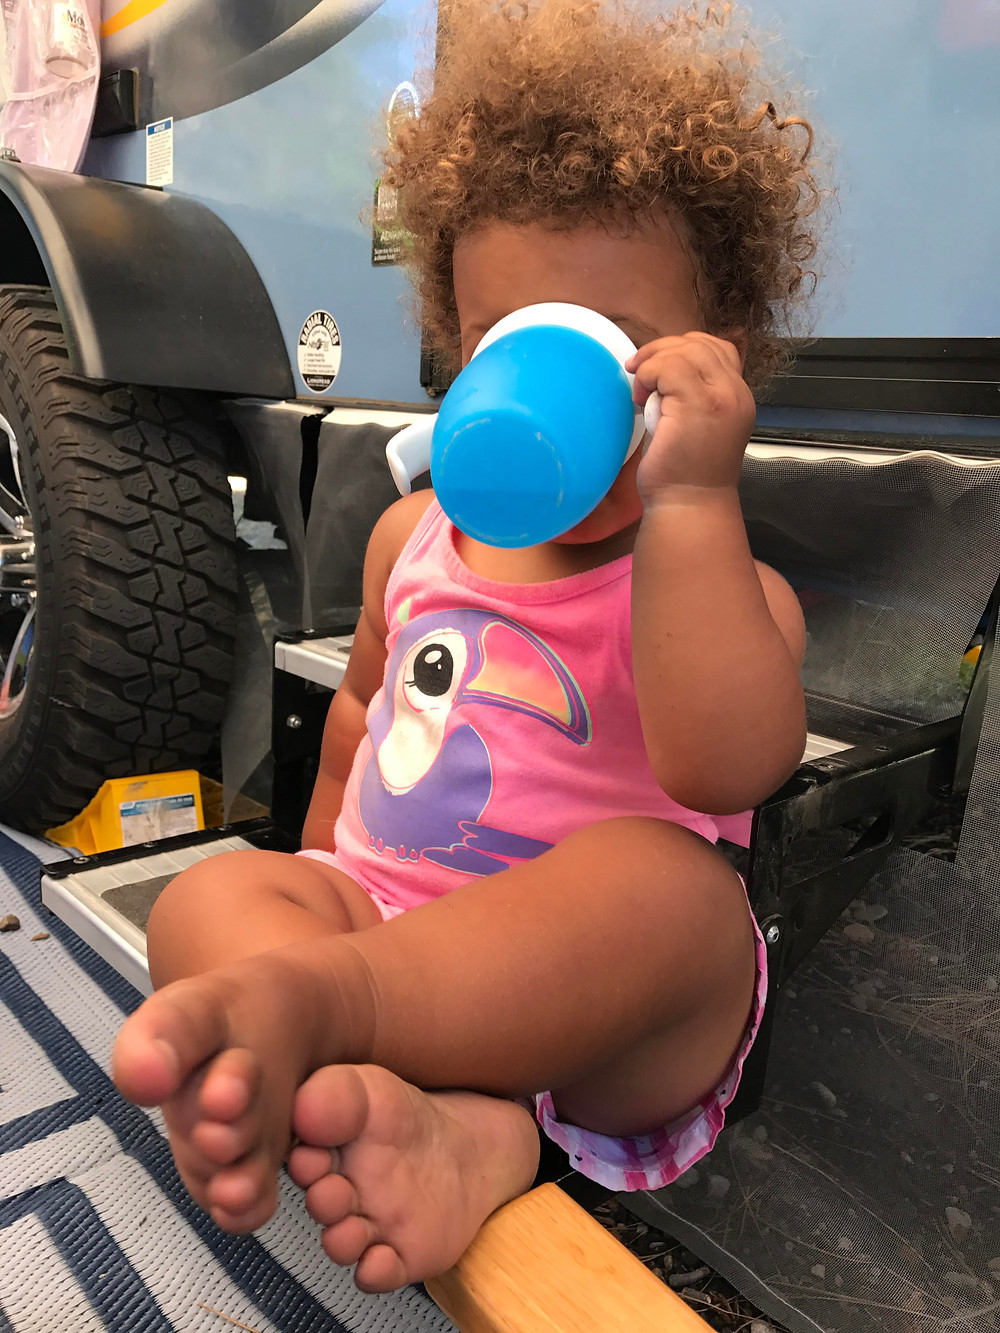 Toddler chilling at a campsite drinking water